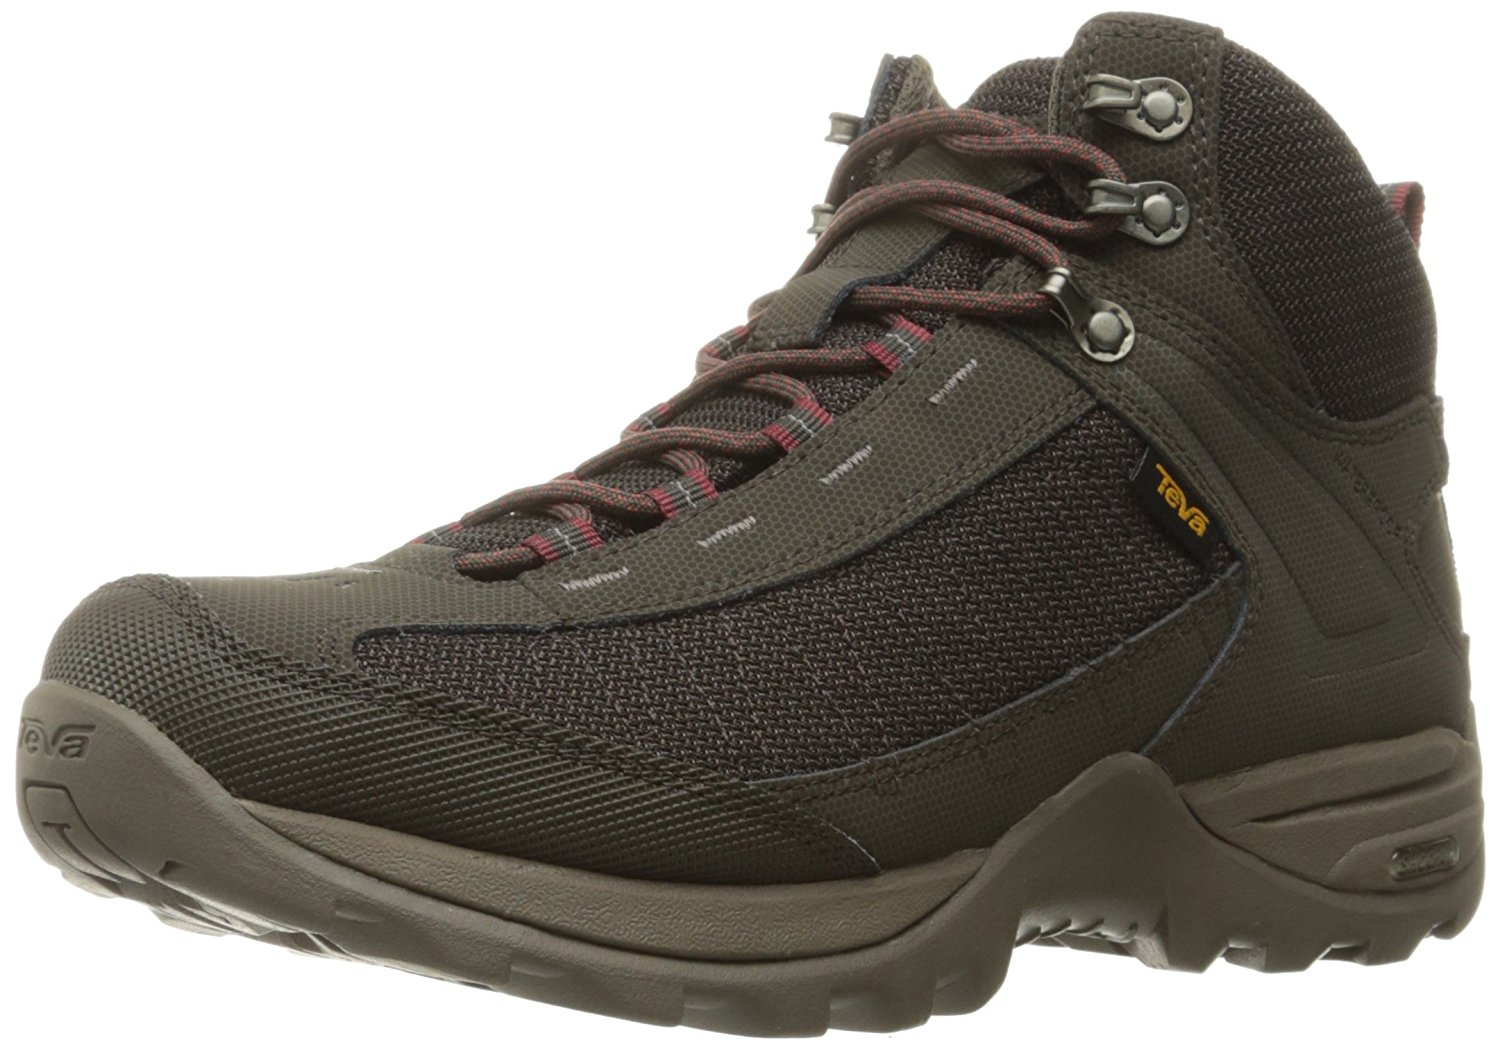 Teva Men's M Raith Iii Mid Waterproof Hiking Boot by